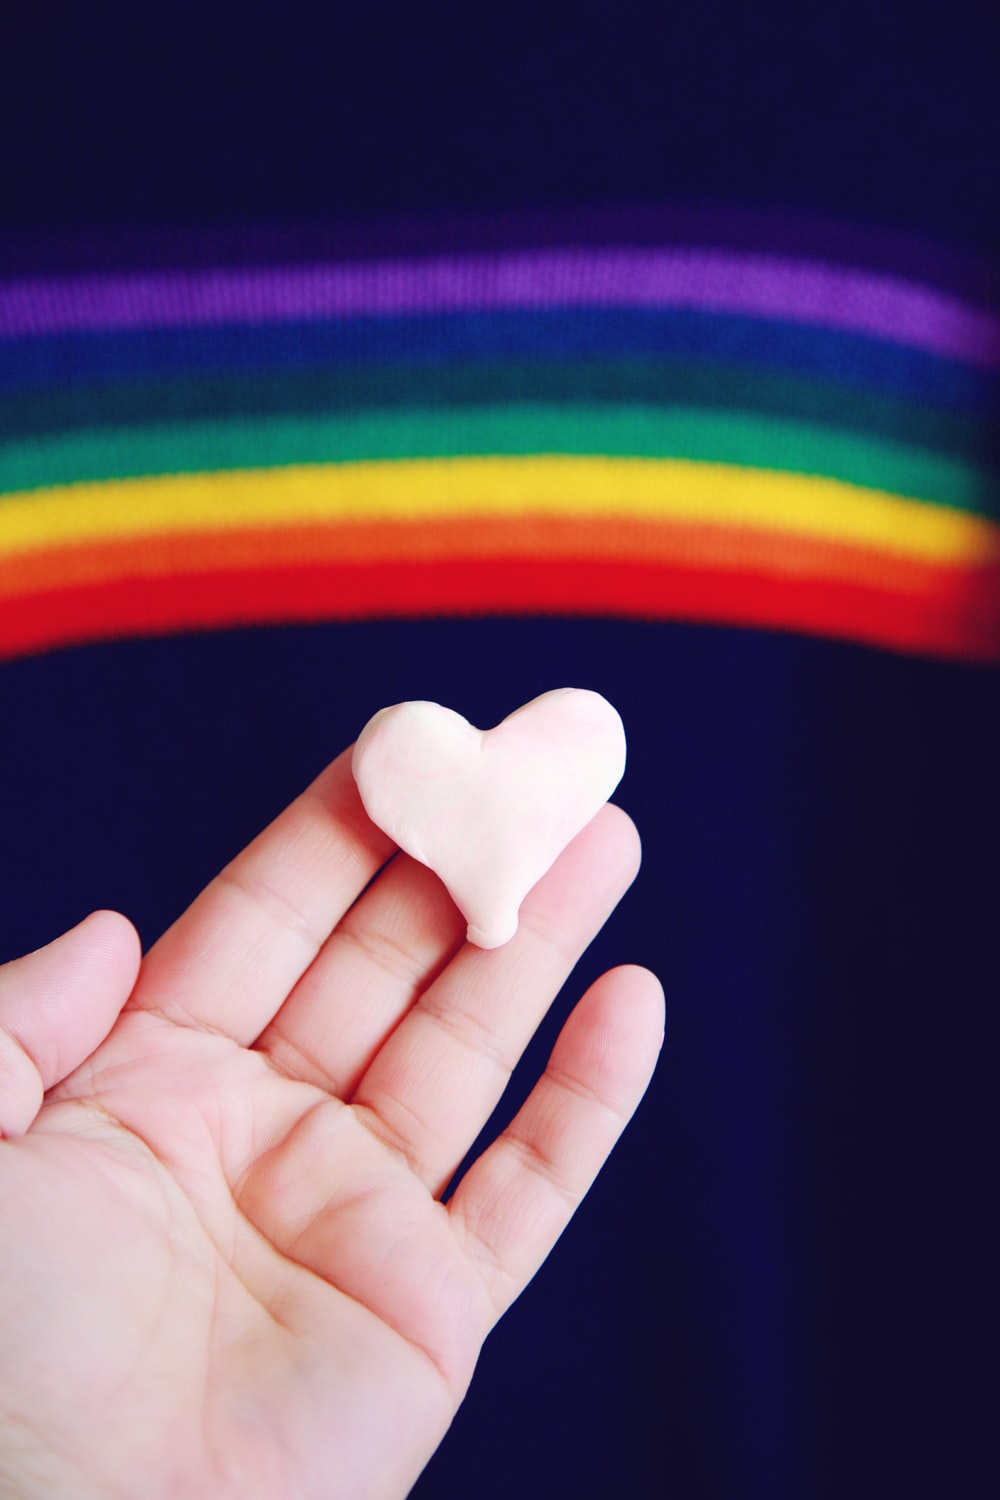 person holding white heart shaped ornament